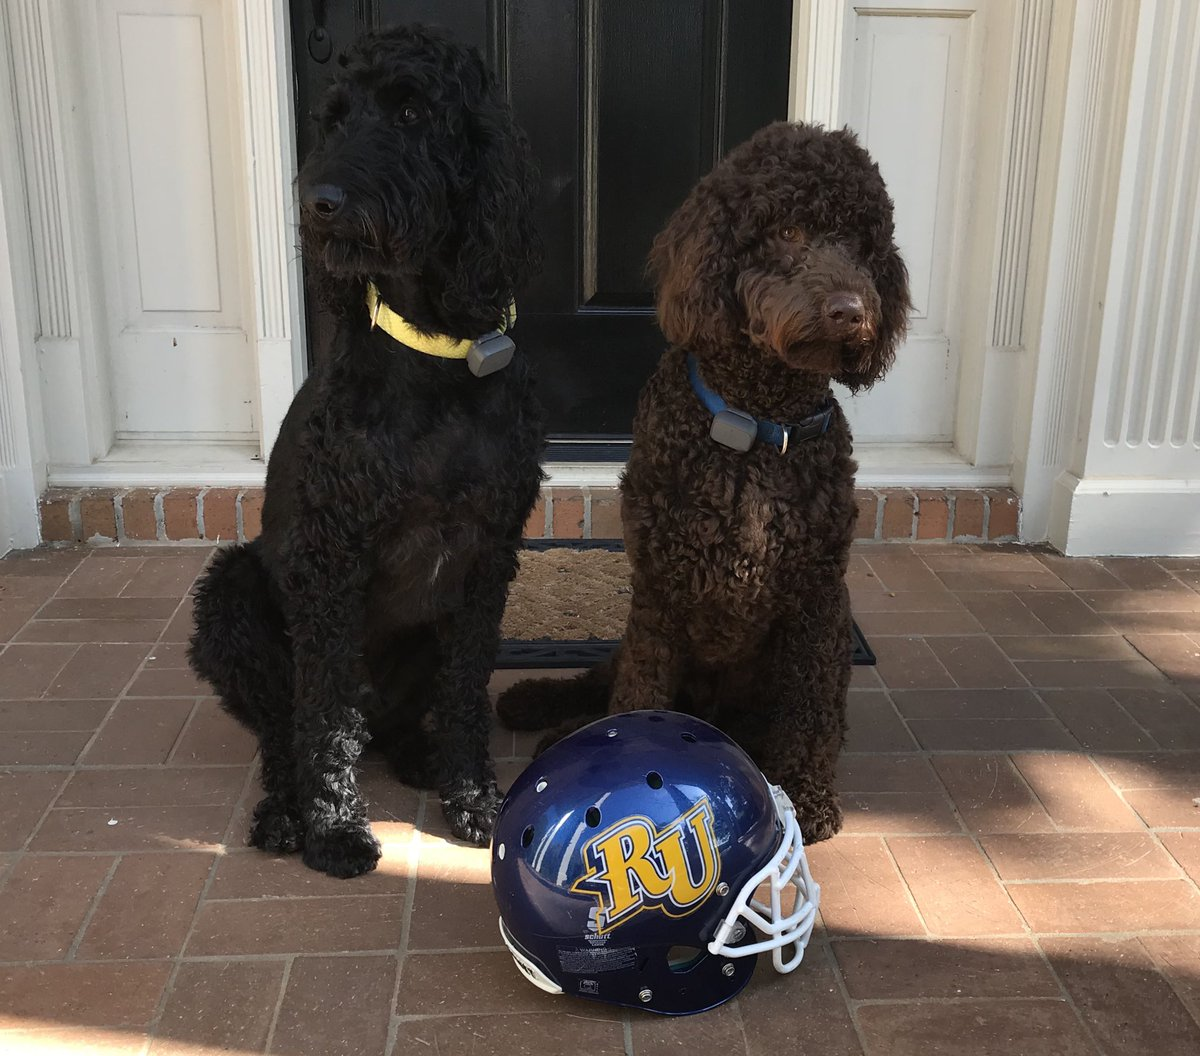 It's Game Day! Bentley and Barney say Go Eagles! #TimetoSoar<br>http://pic.twitter.com/CGUTDnZMsj